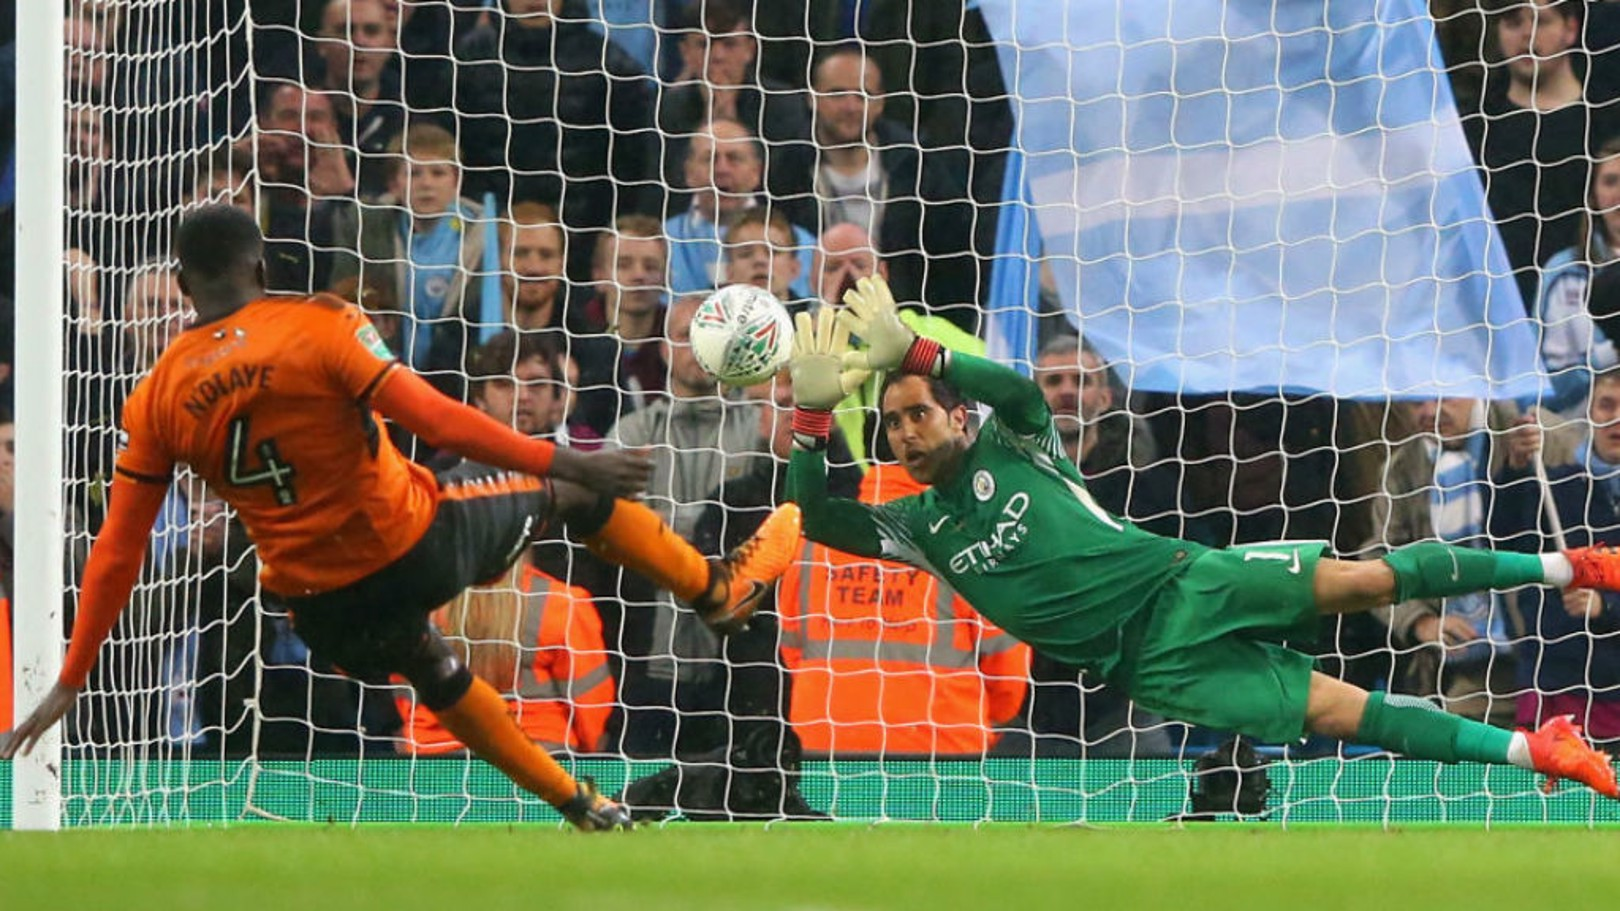 HAND IT TO BRAVO: Claudio Bravo makes a wonderful save in the penalty shoot-out